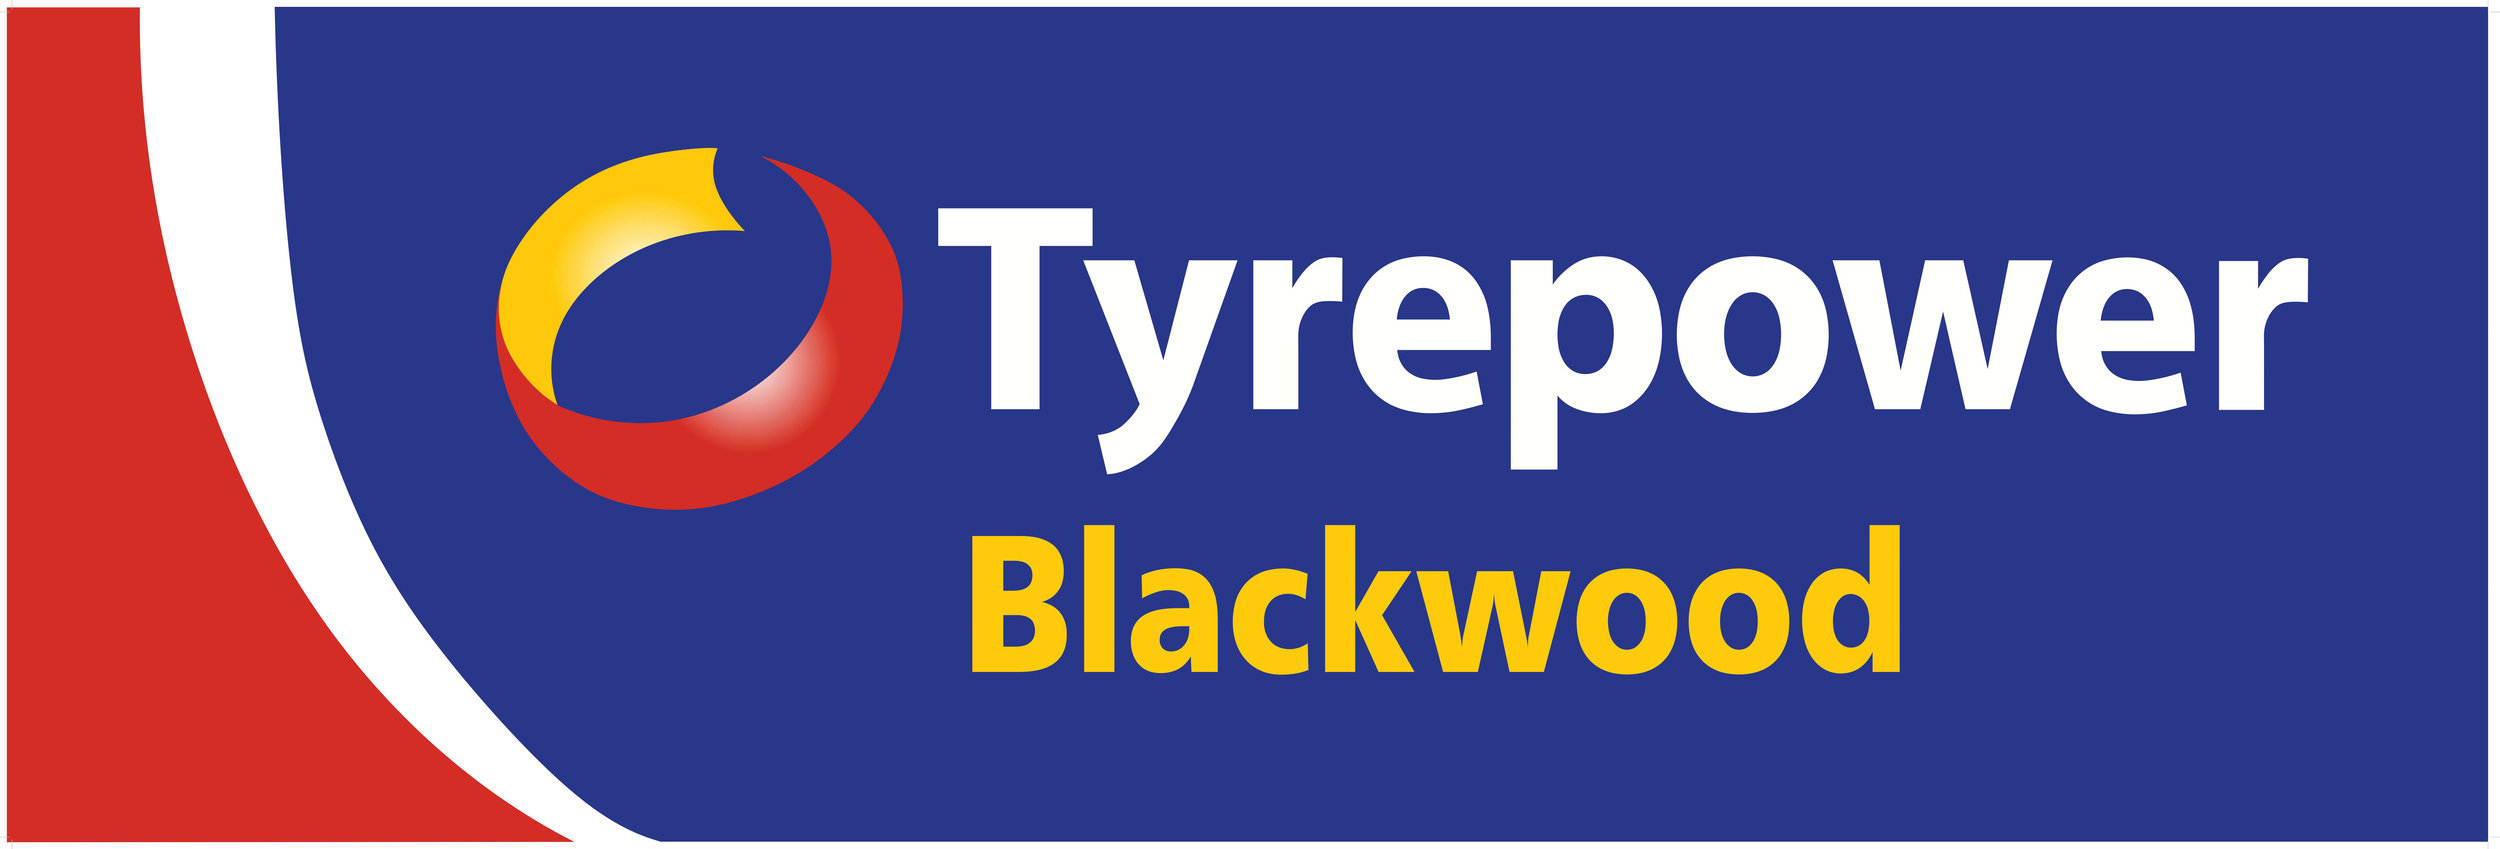 Tyerpower blackwood.jpg